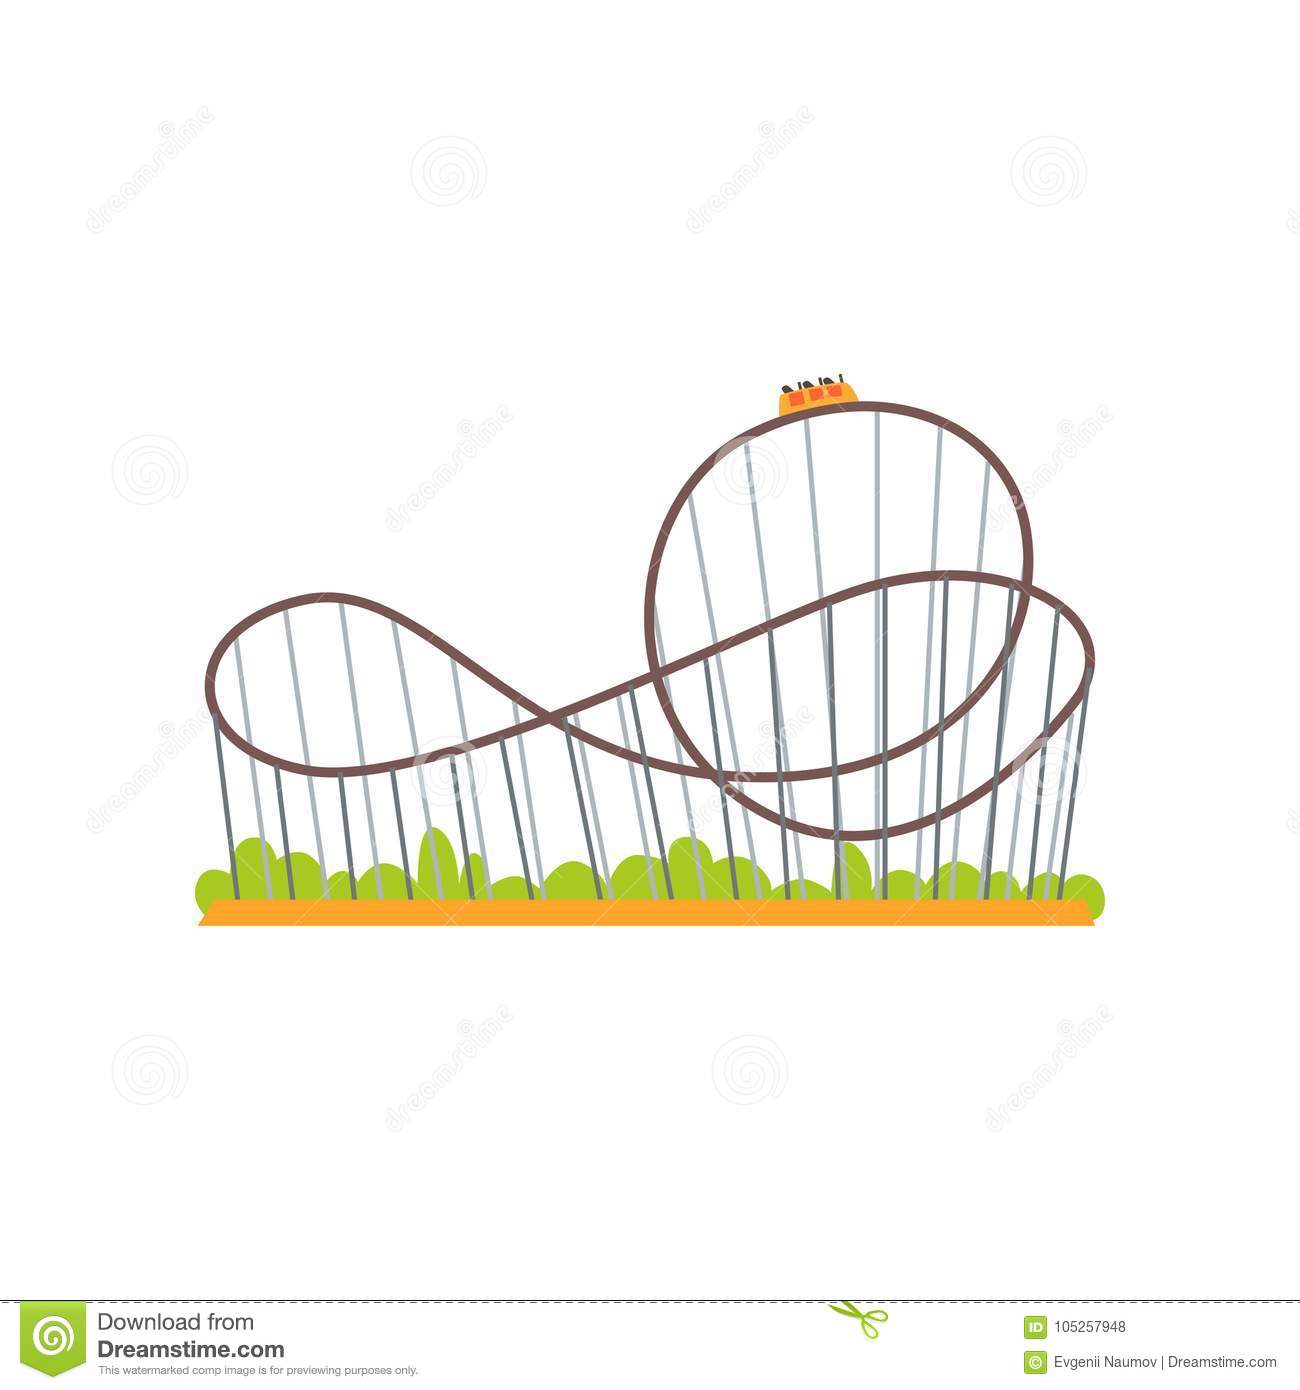 Rollercoaster track with train. Extreme ride attraction. Family amusement park concept. Colorful flat vector design icon